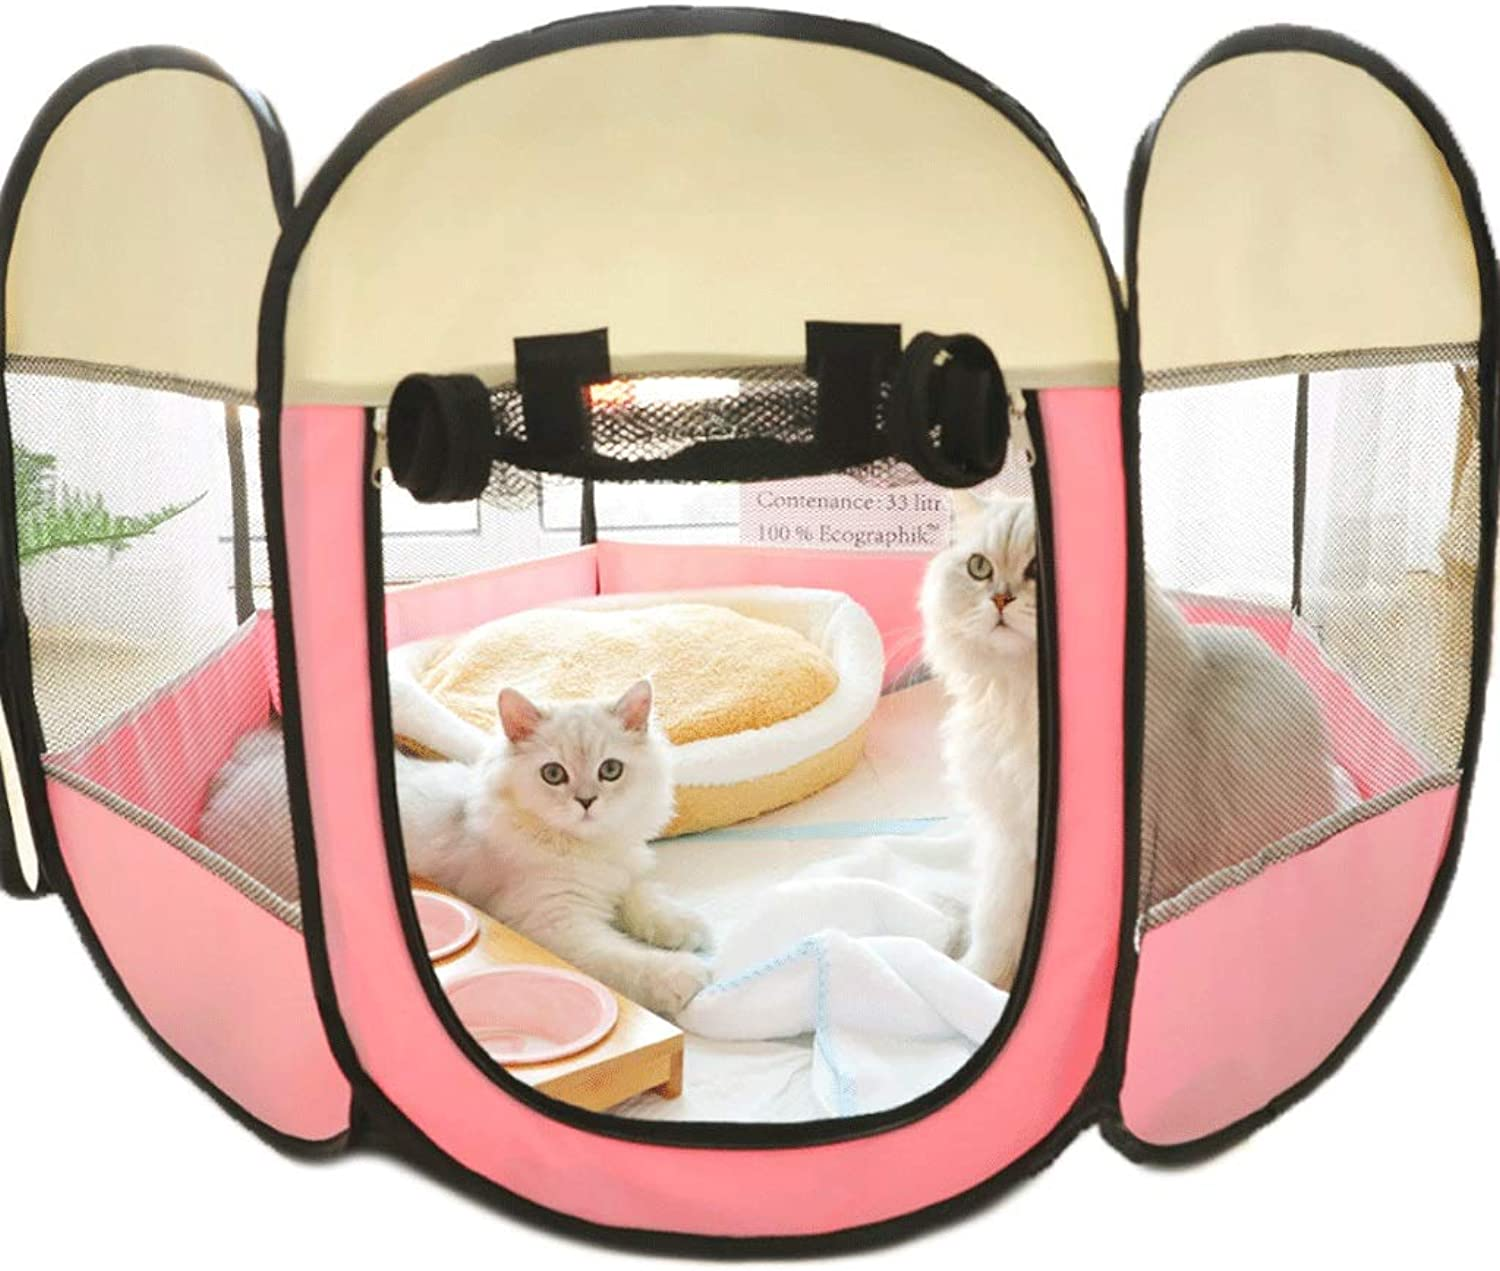 Hongyan Pet Beds Closed Pet Pregnancy Delivery Room Grid Cloth Clean Skylight Cat Nest Tent Breathable Antimosquito Pet Kennel A+ (Size   75x75x45cm)